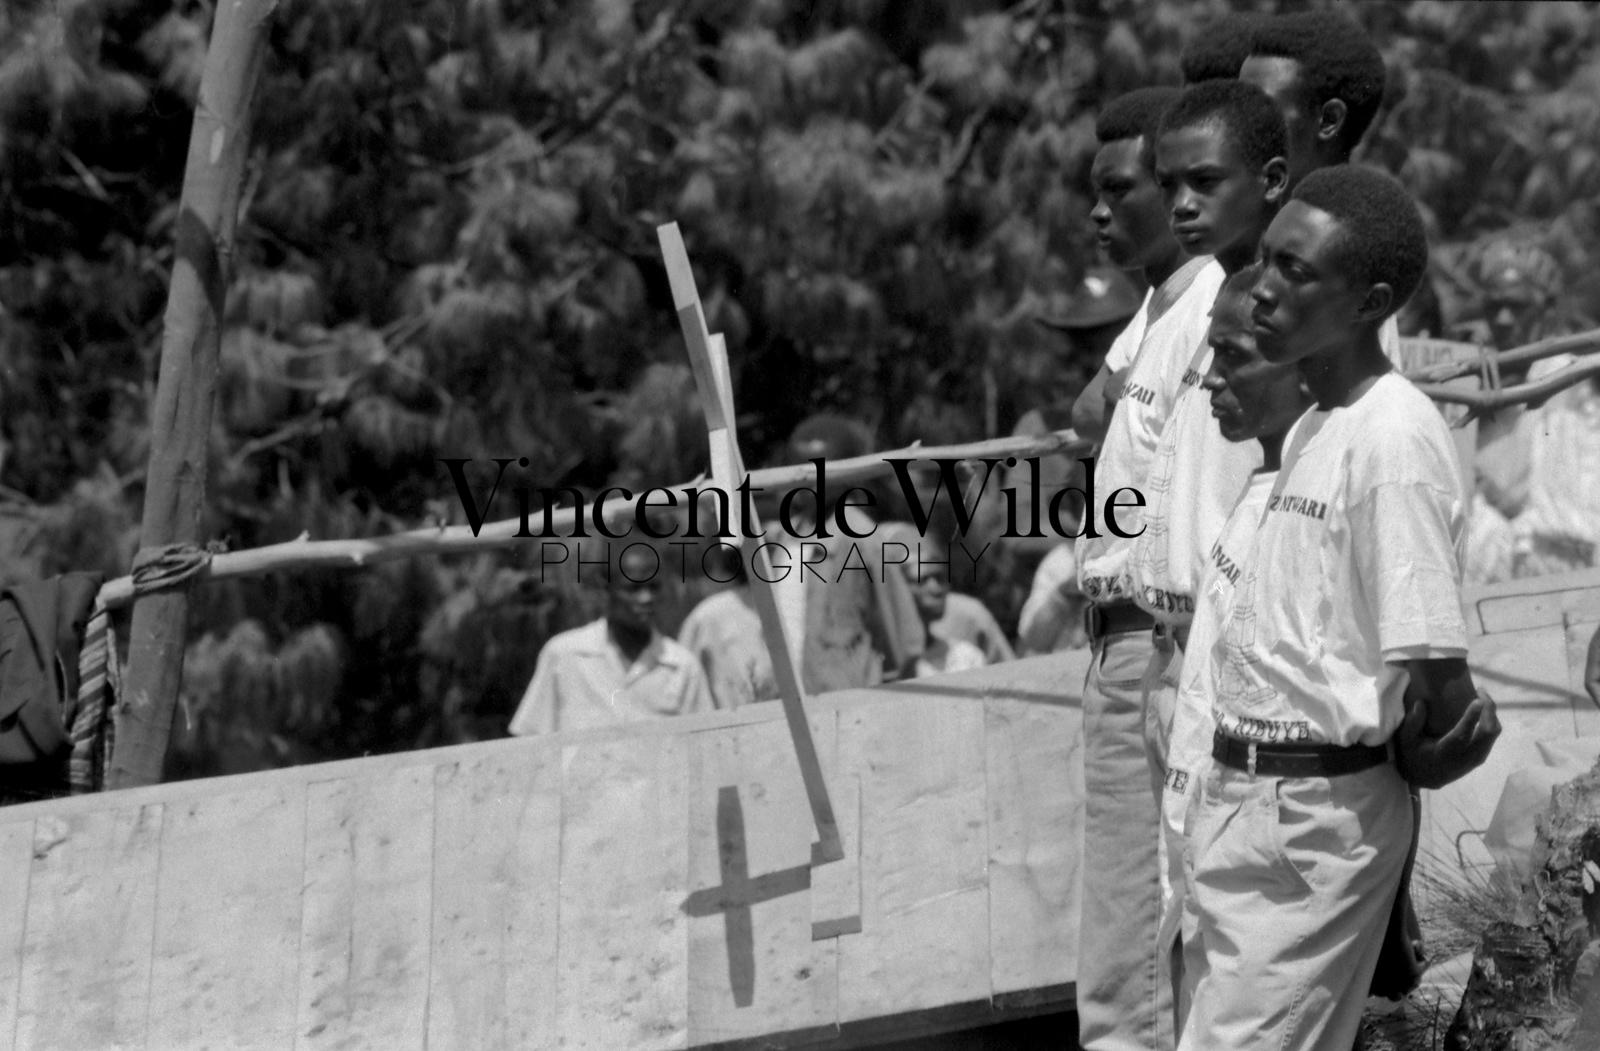 Ré-enterrement avec Dignité des Victimes - Dignified Re-Burial of the Genocide Victims